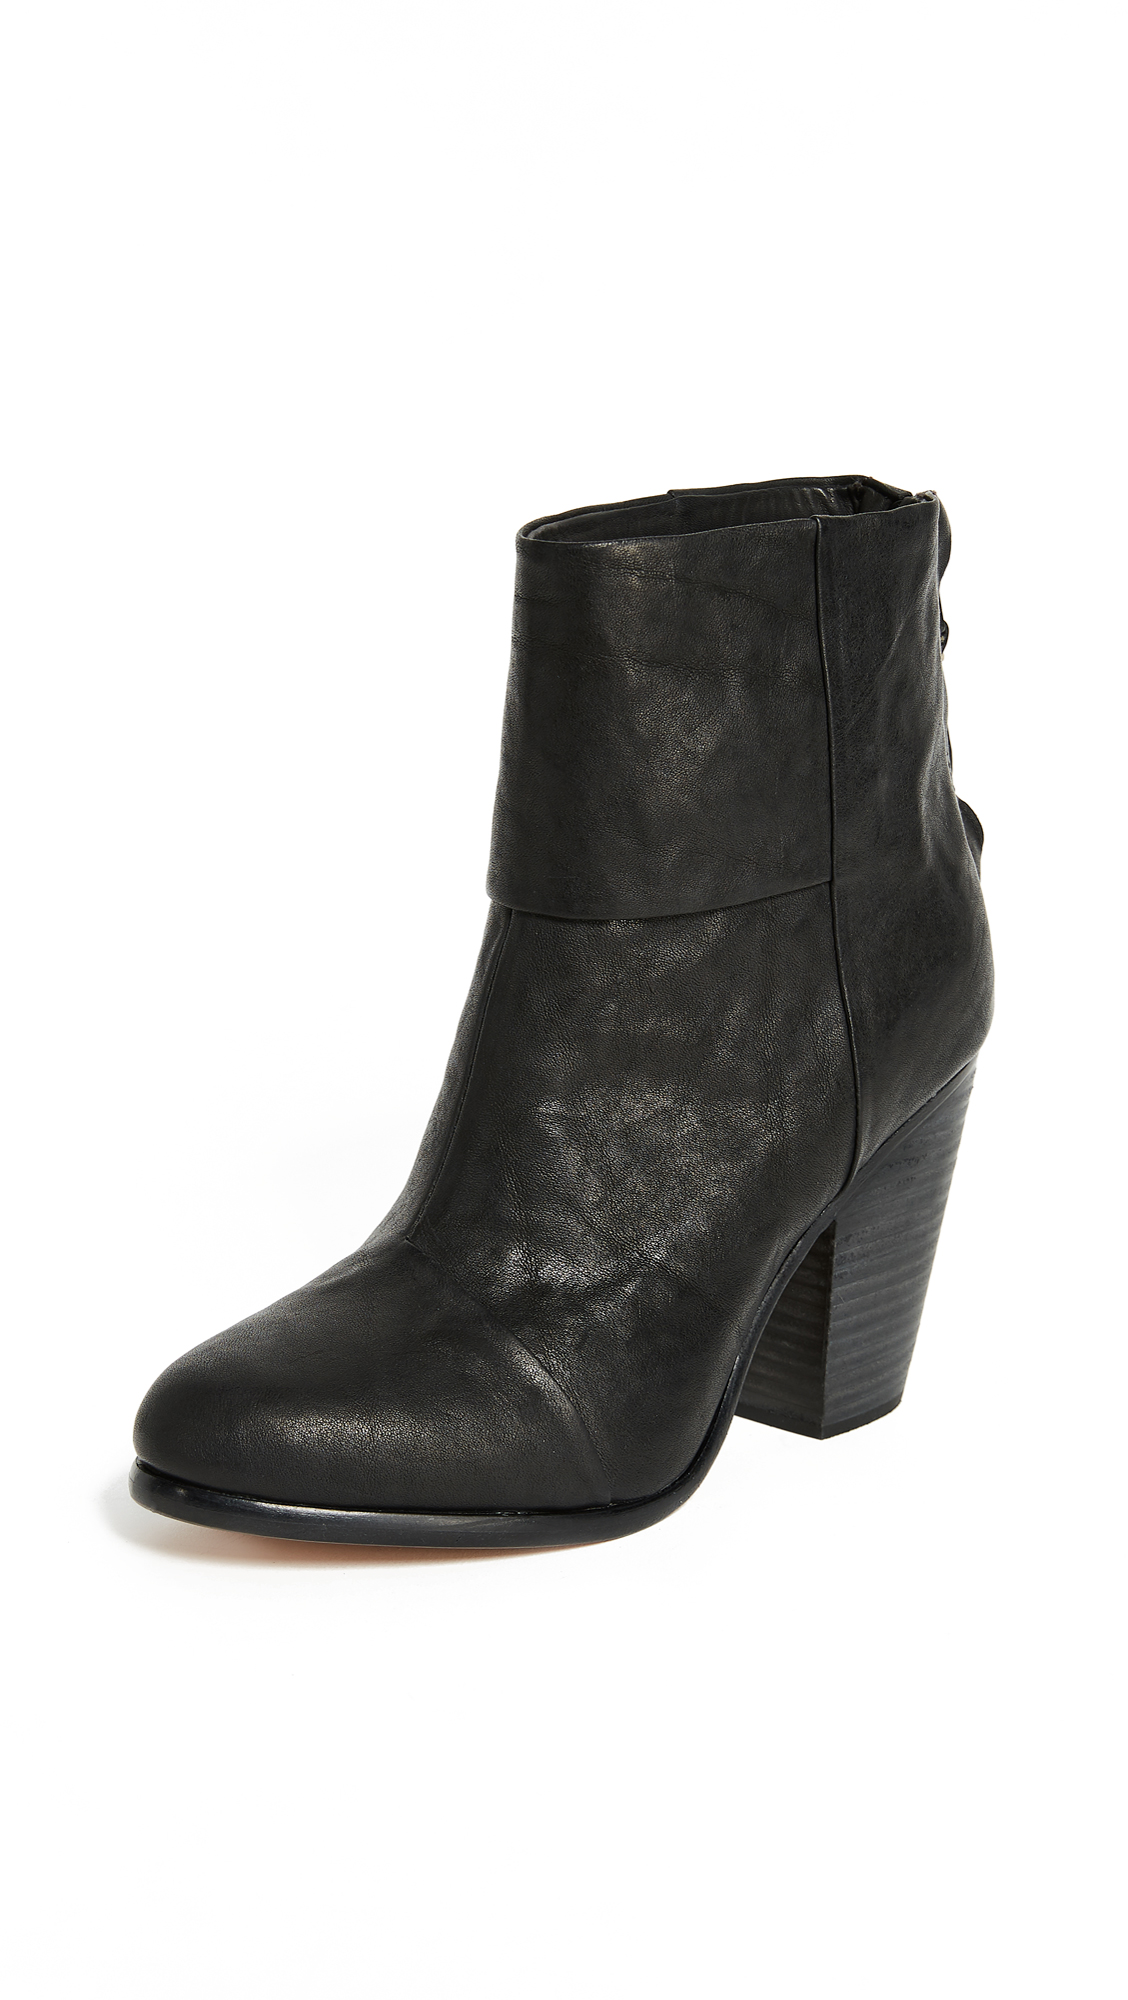 Rag & Bone Classic Newbury Booties - Black